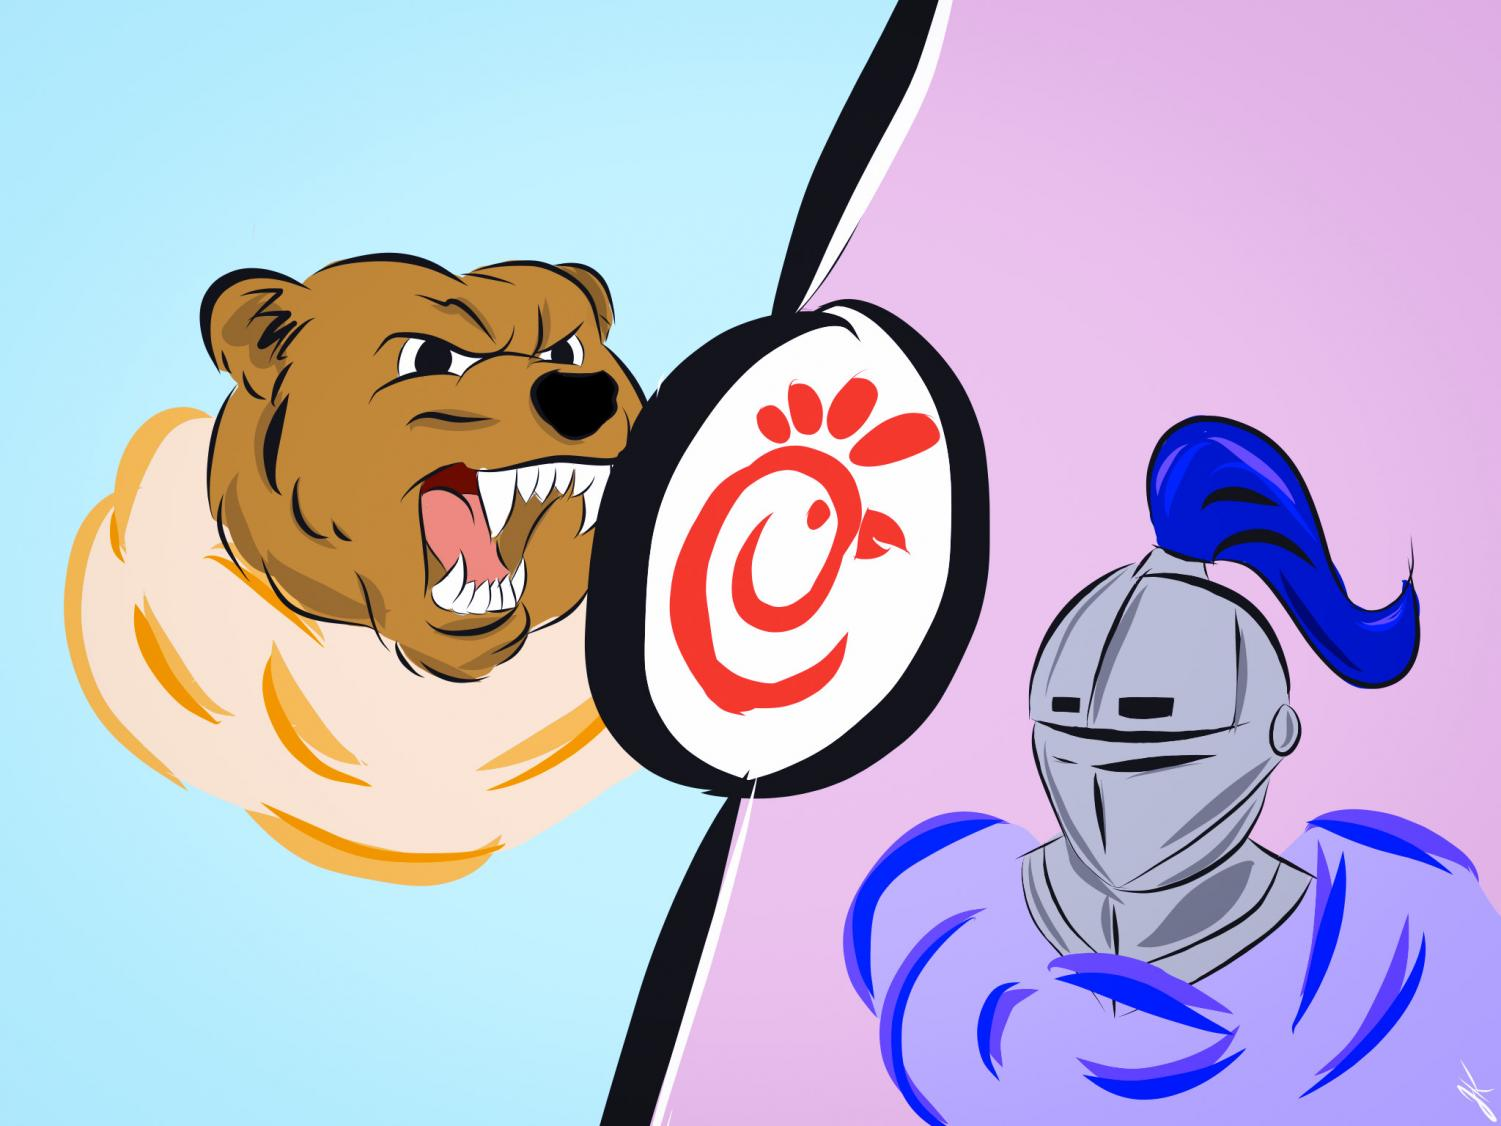 Grizzlies and Knights are ready to fight to claim the title of Chick-Fil-A Challenge Winner.